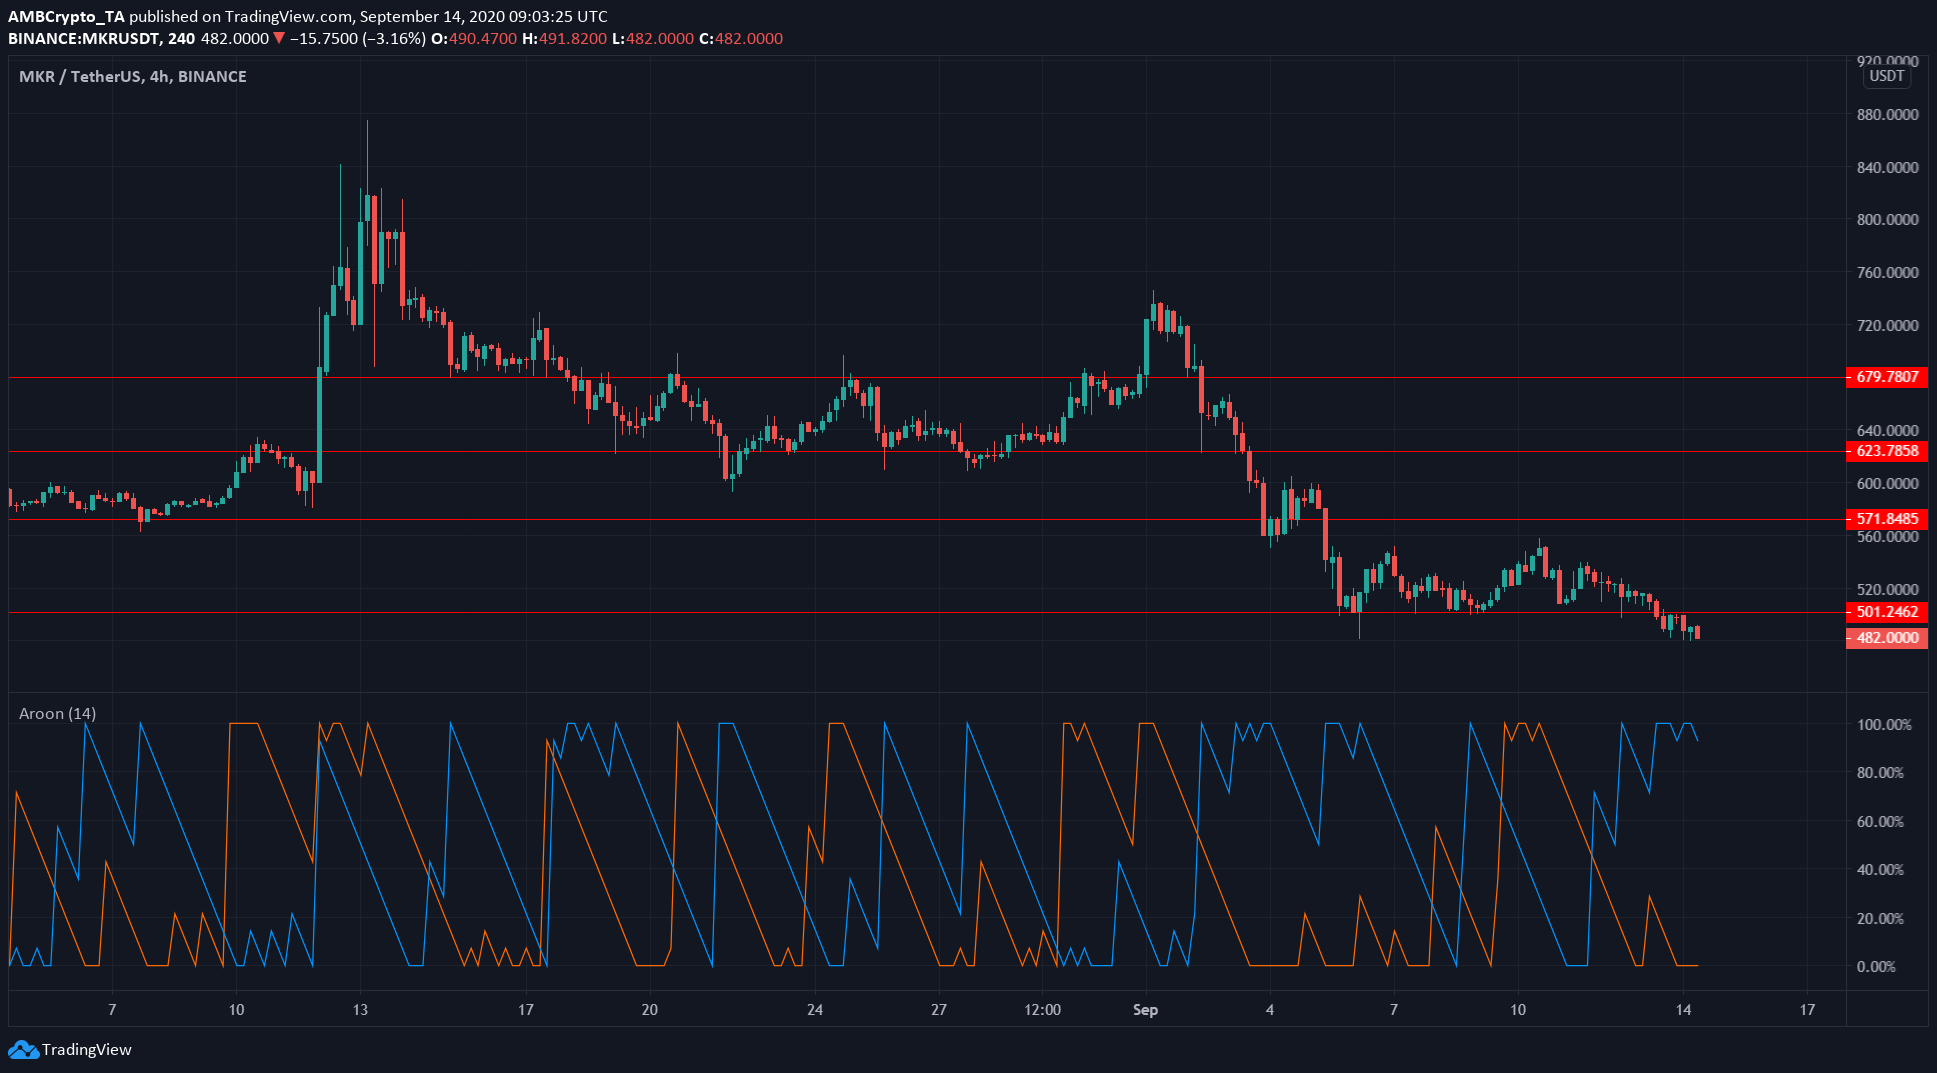 Cardano, Steem, Maker Price Analysis: 14 September